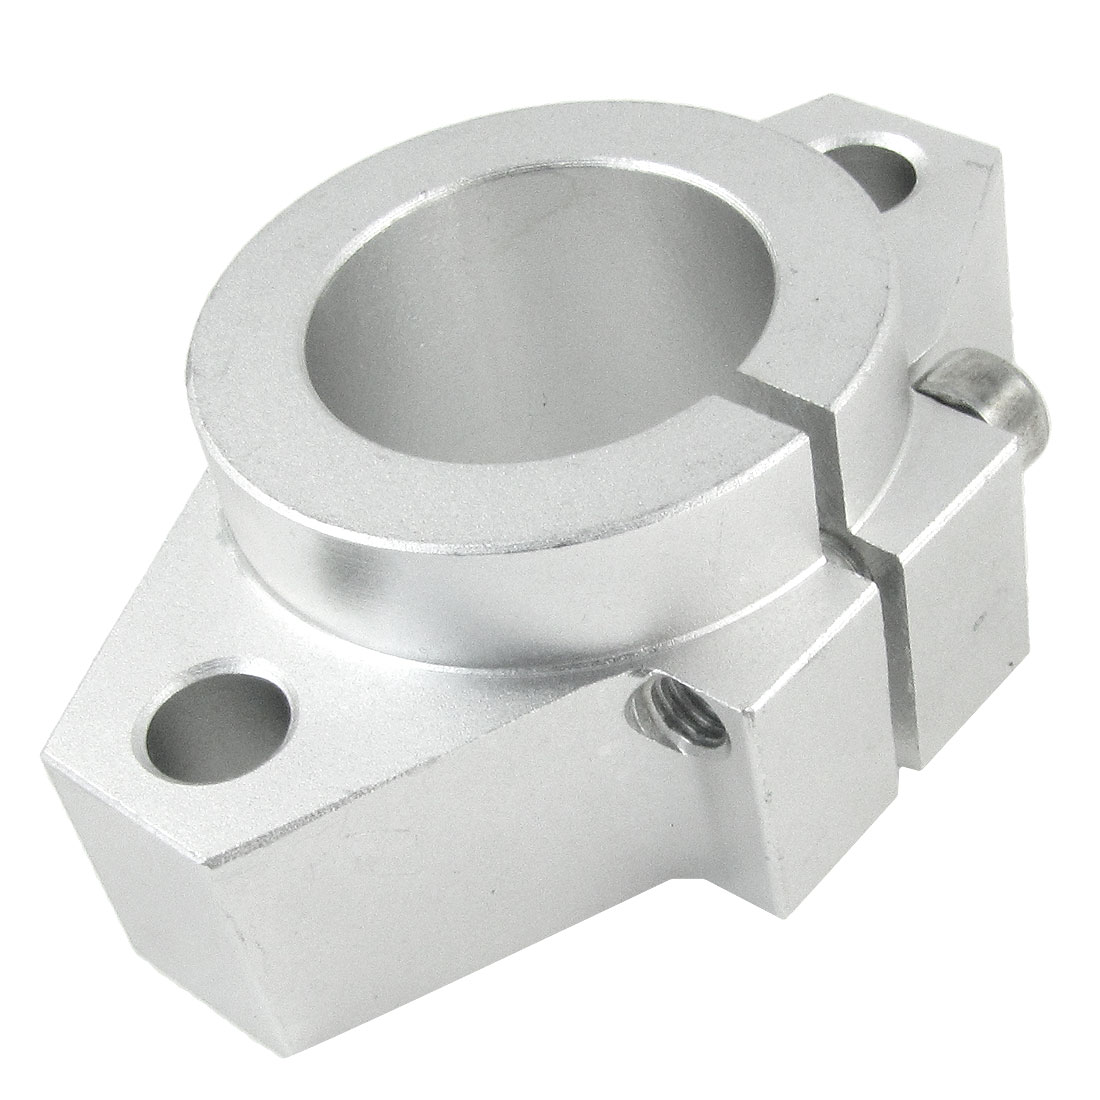 Adjustable 30mm Inner Diameter Shaft Support Aluminum Silver Tone